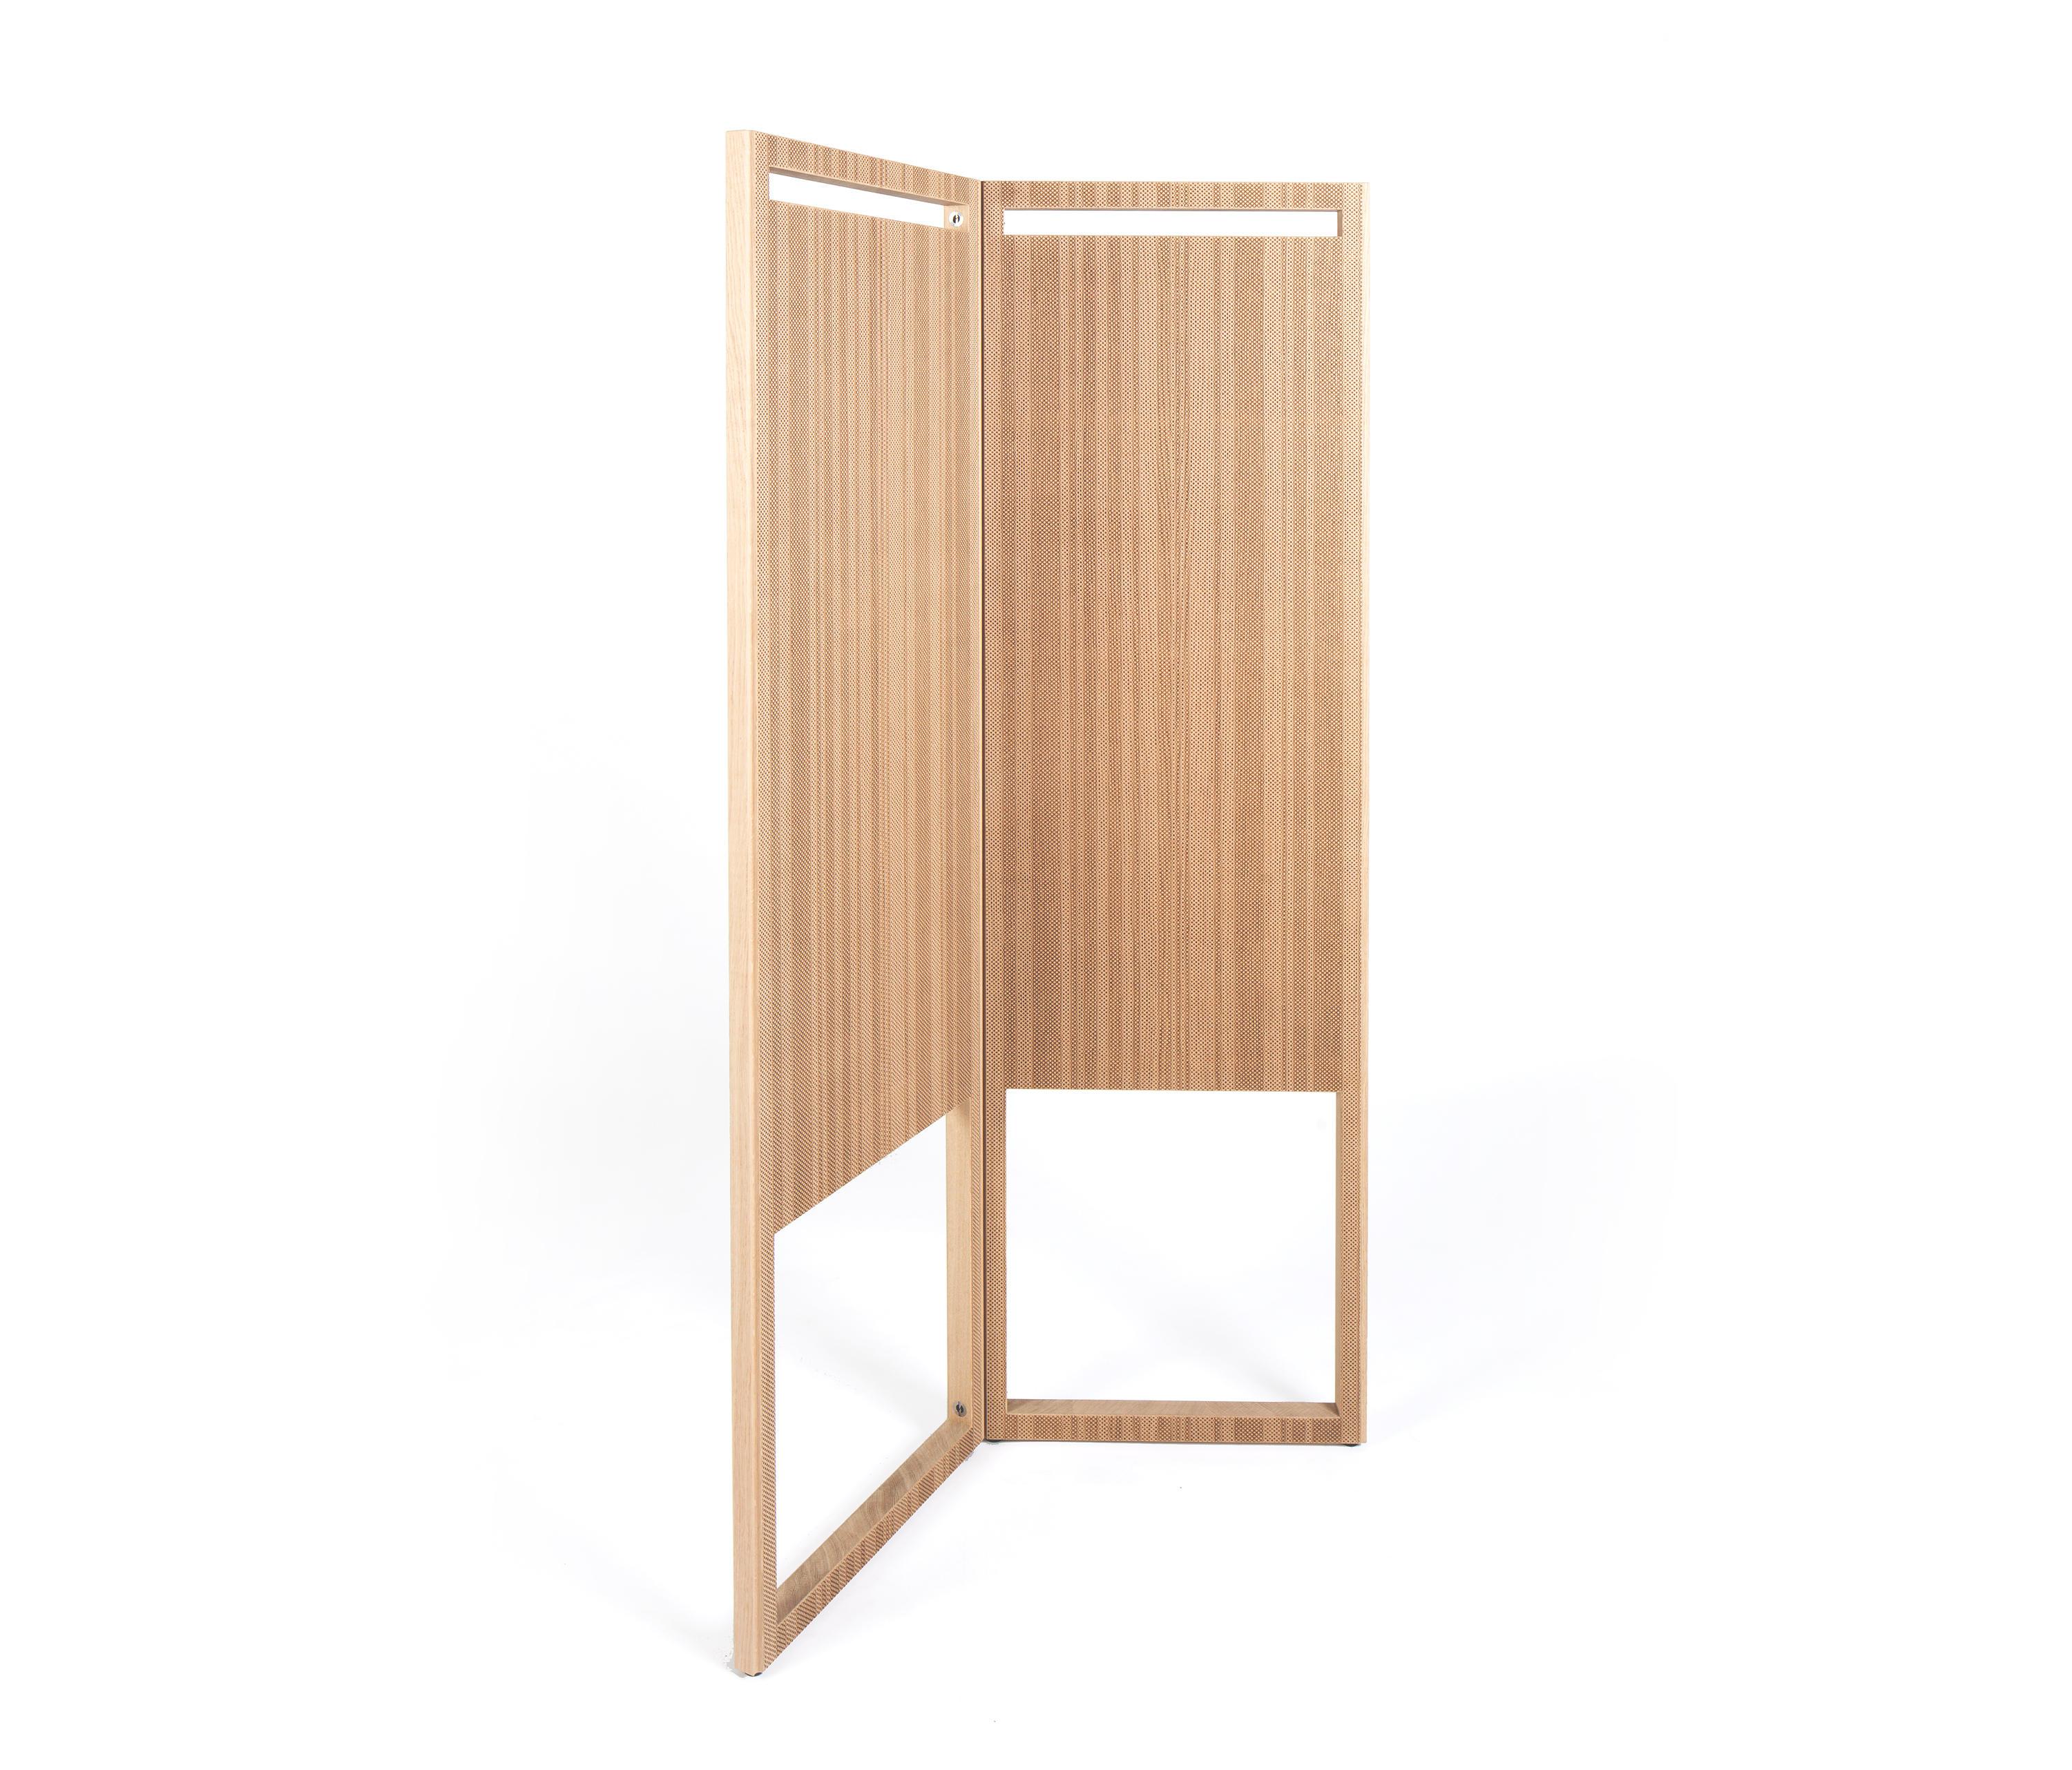 Paravent Deutsch Link Paravent Folding Screens From Strasserthun Architonic